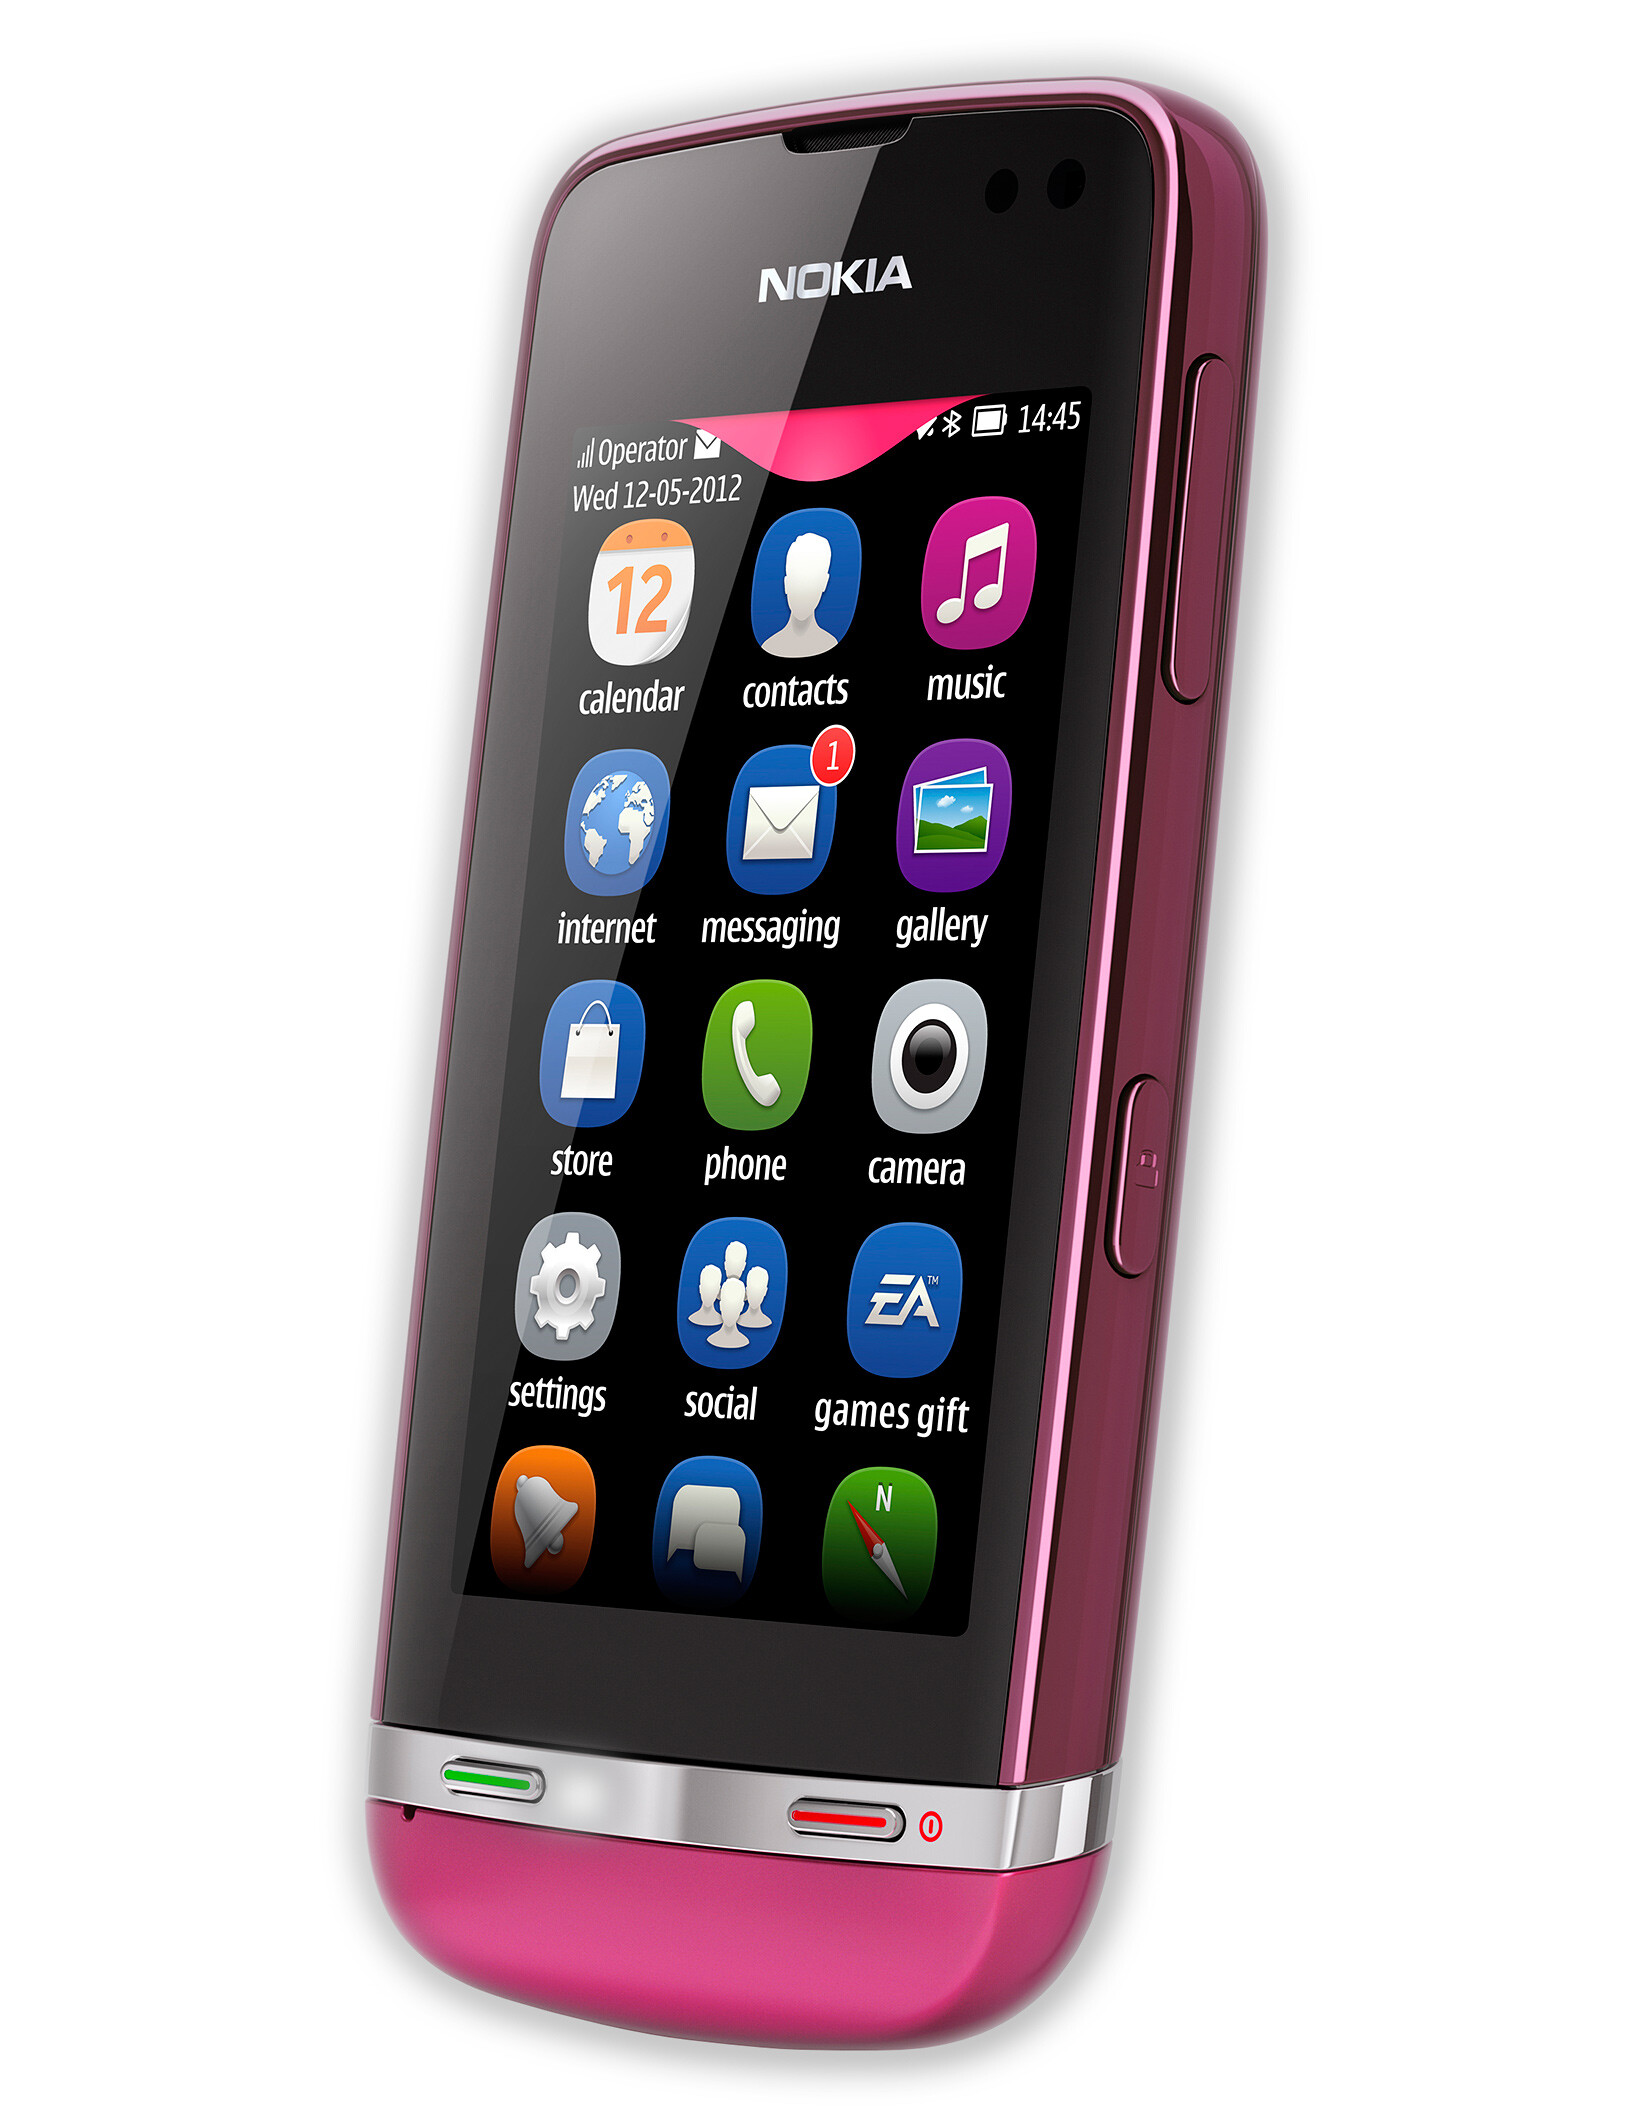 Nokia Asha 501review And Specifications   Apps Directories